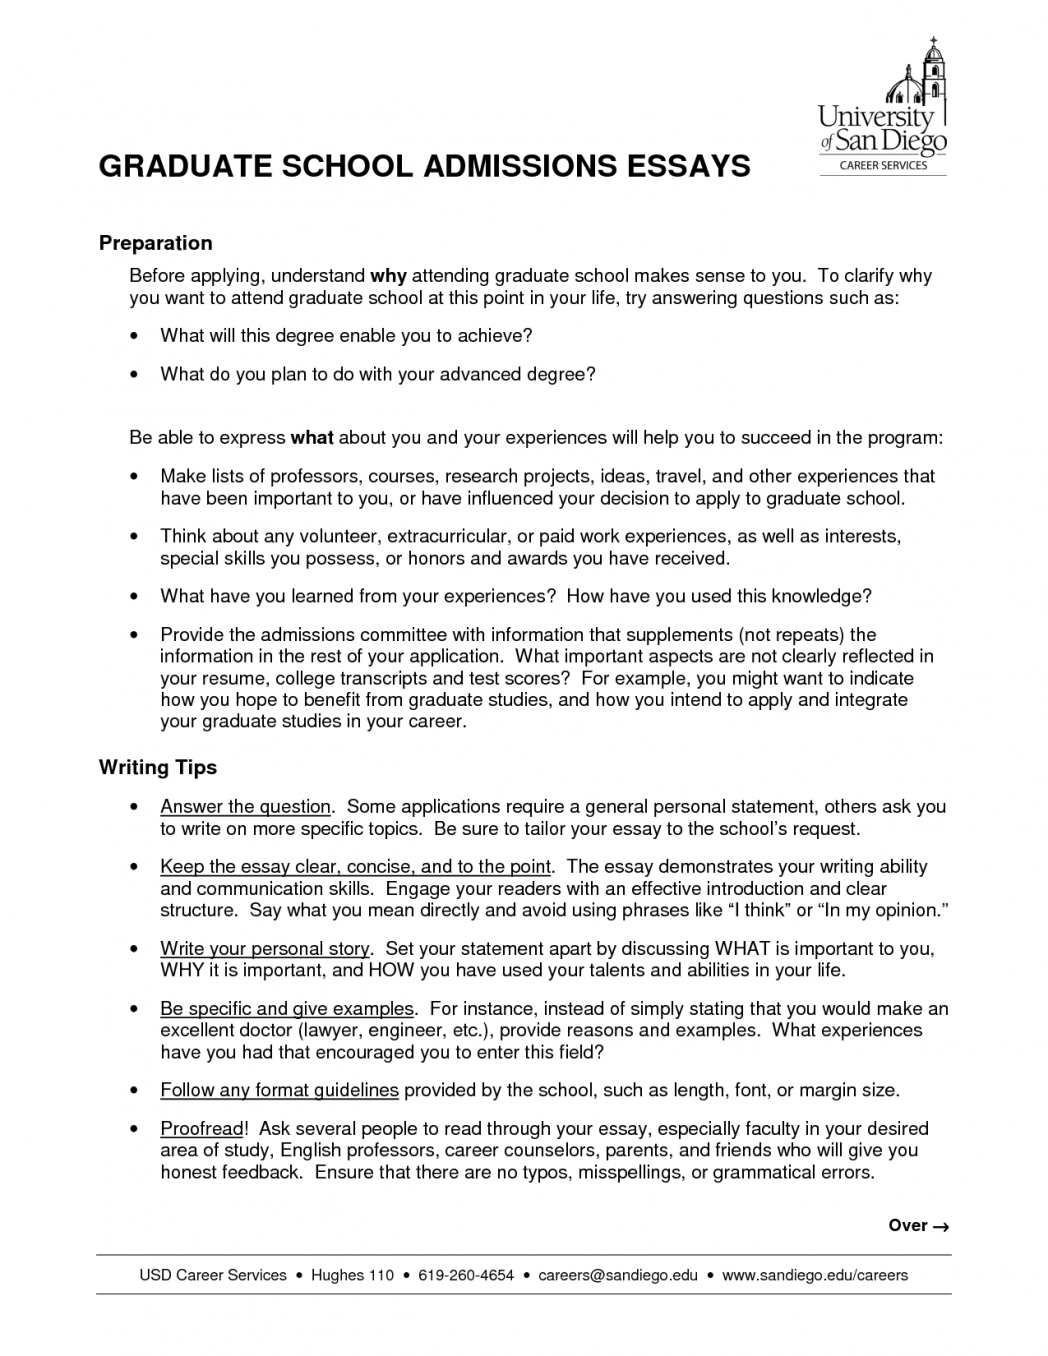 010 Essay Example Graduate School Format Grad Application Mersn Proforum Co Lic3k Examples Mba Tips Sample Writing Service Questions Counseling Free Heading Remarkable Personal Samples Full